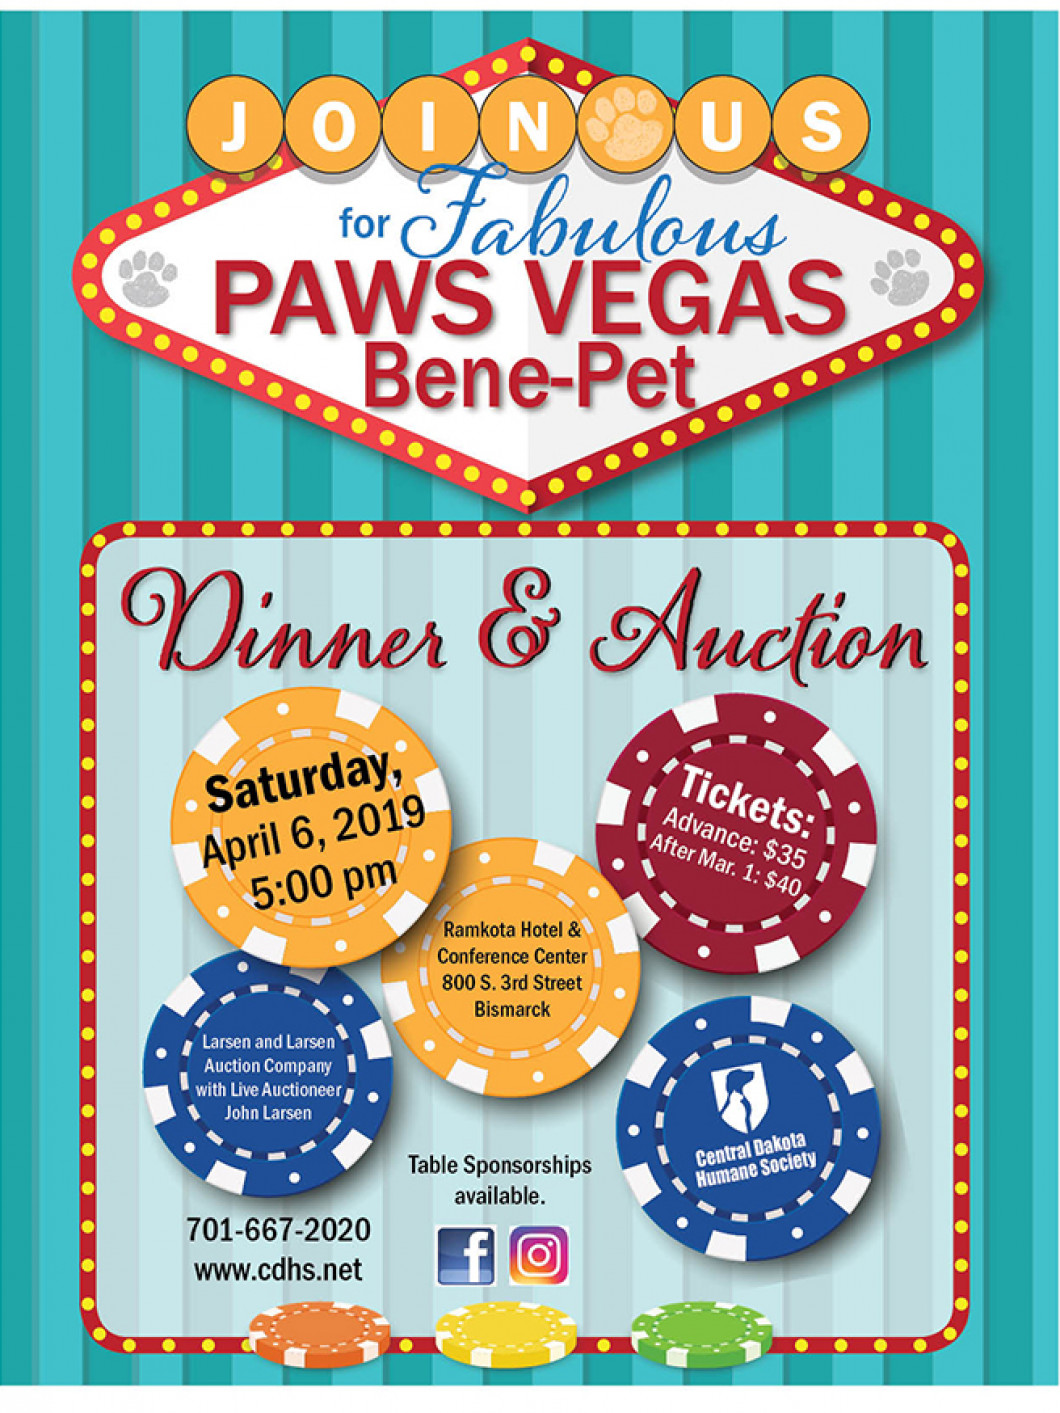 Join us for the Fabulous Paws Vegas Bene-Pet Dinner and Auction!